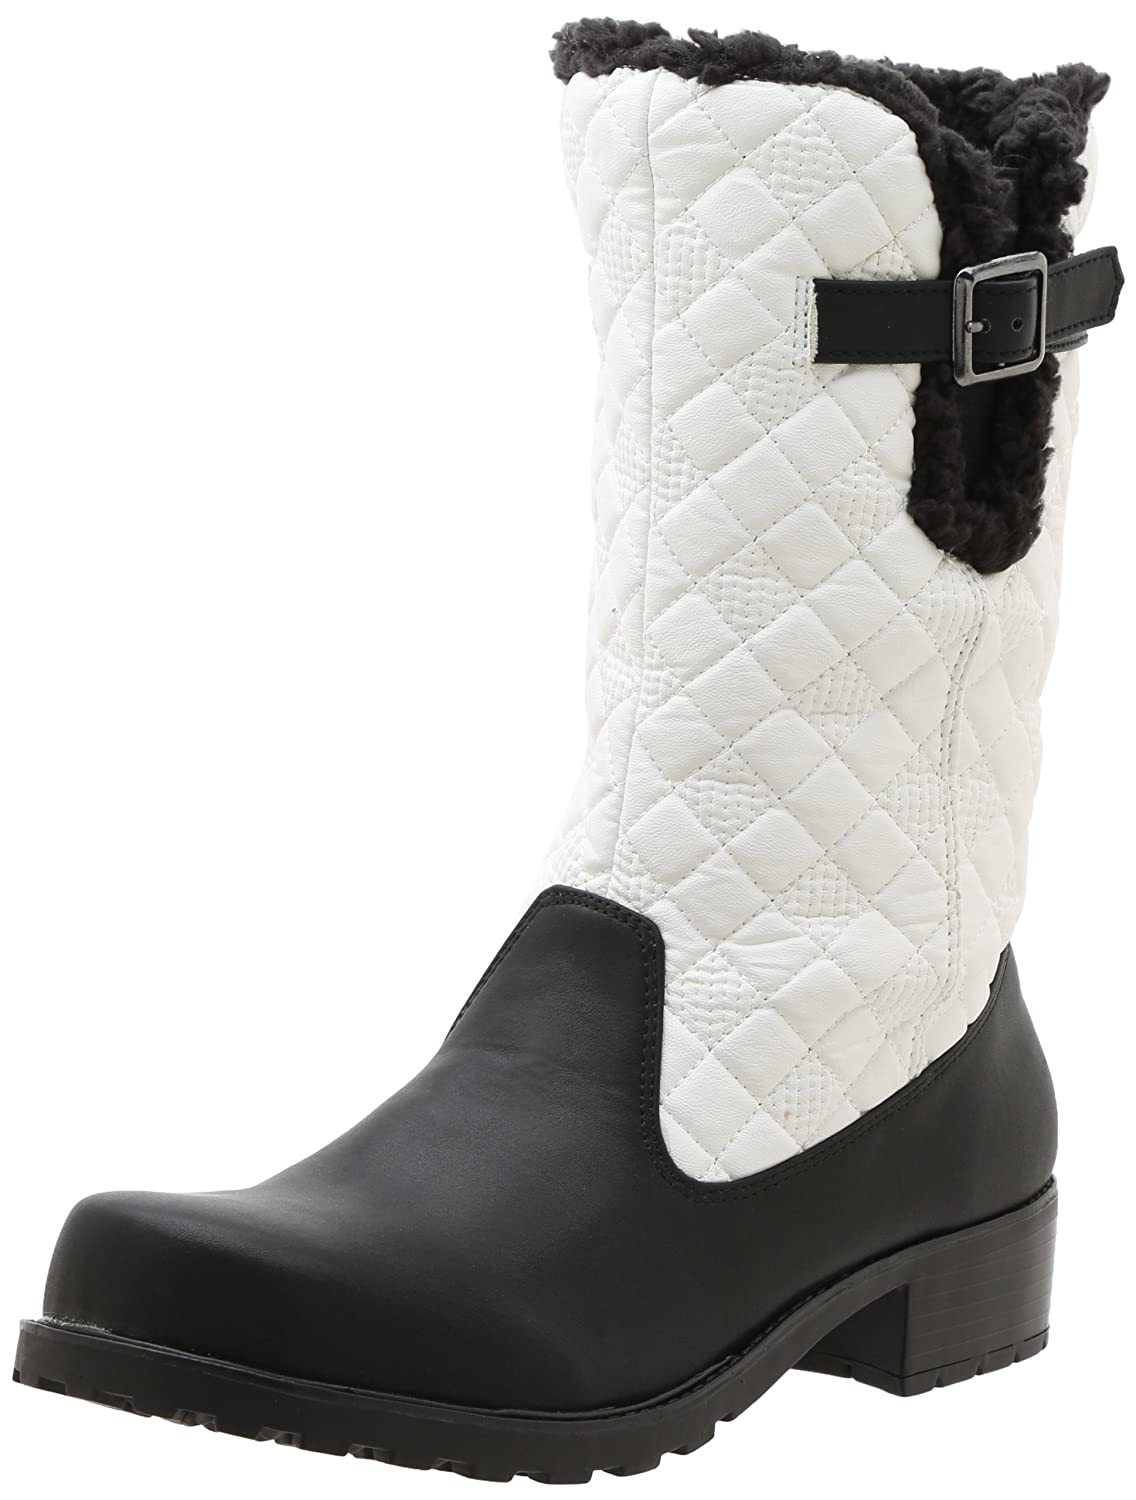 Trotters Womens Blizzard III Snow Boot